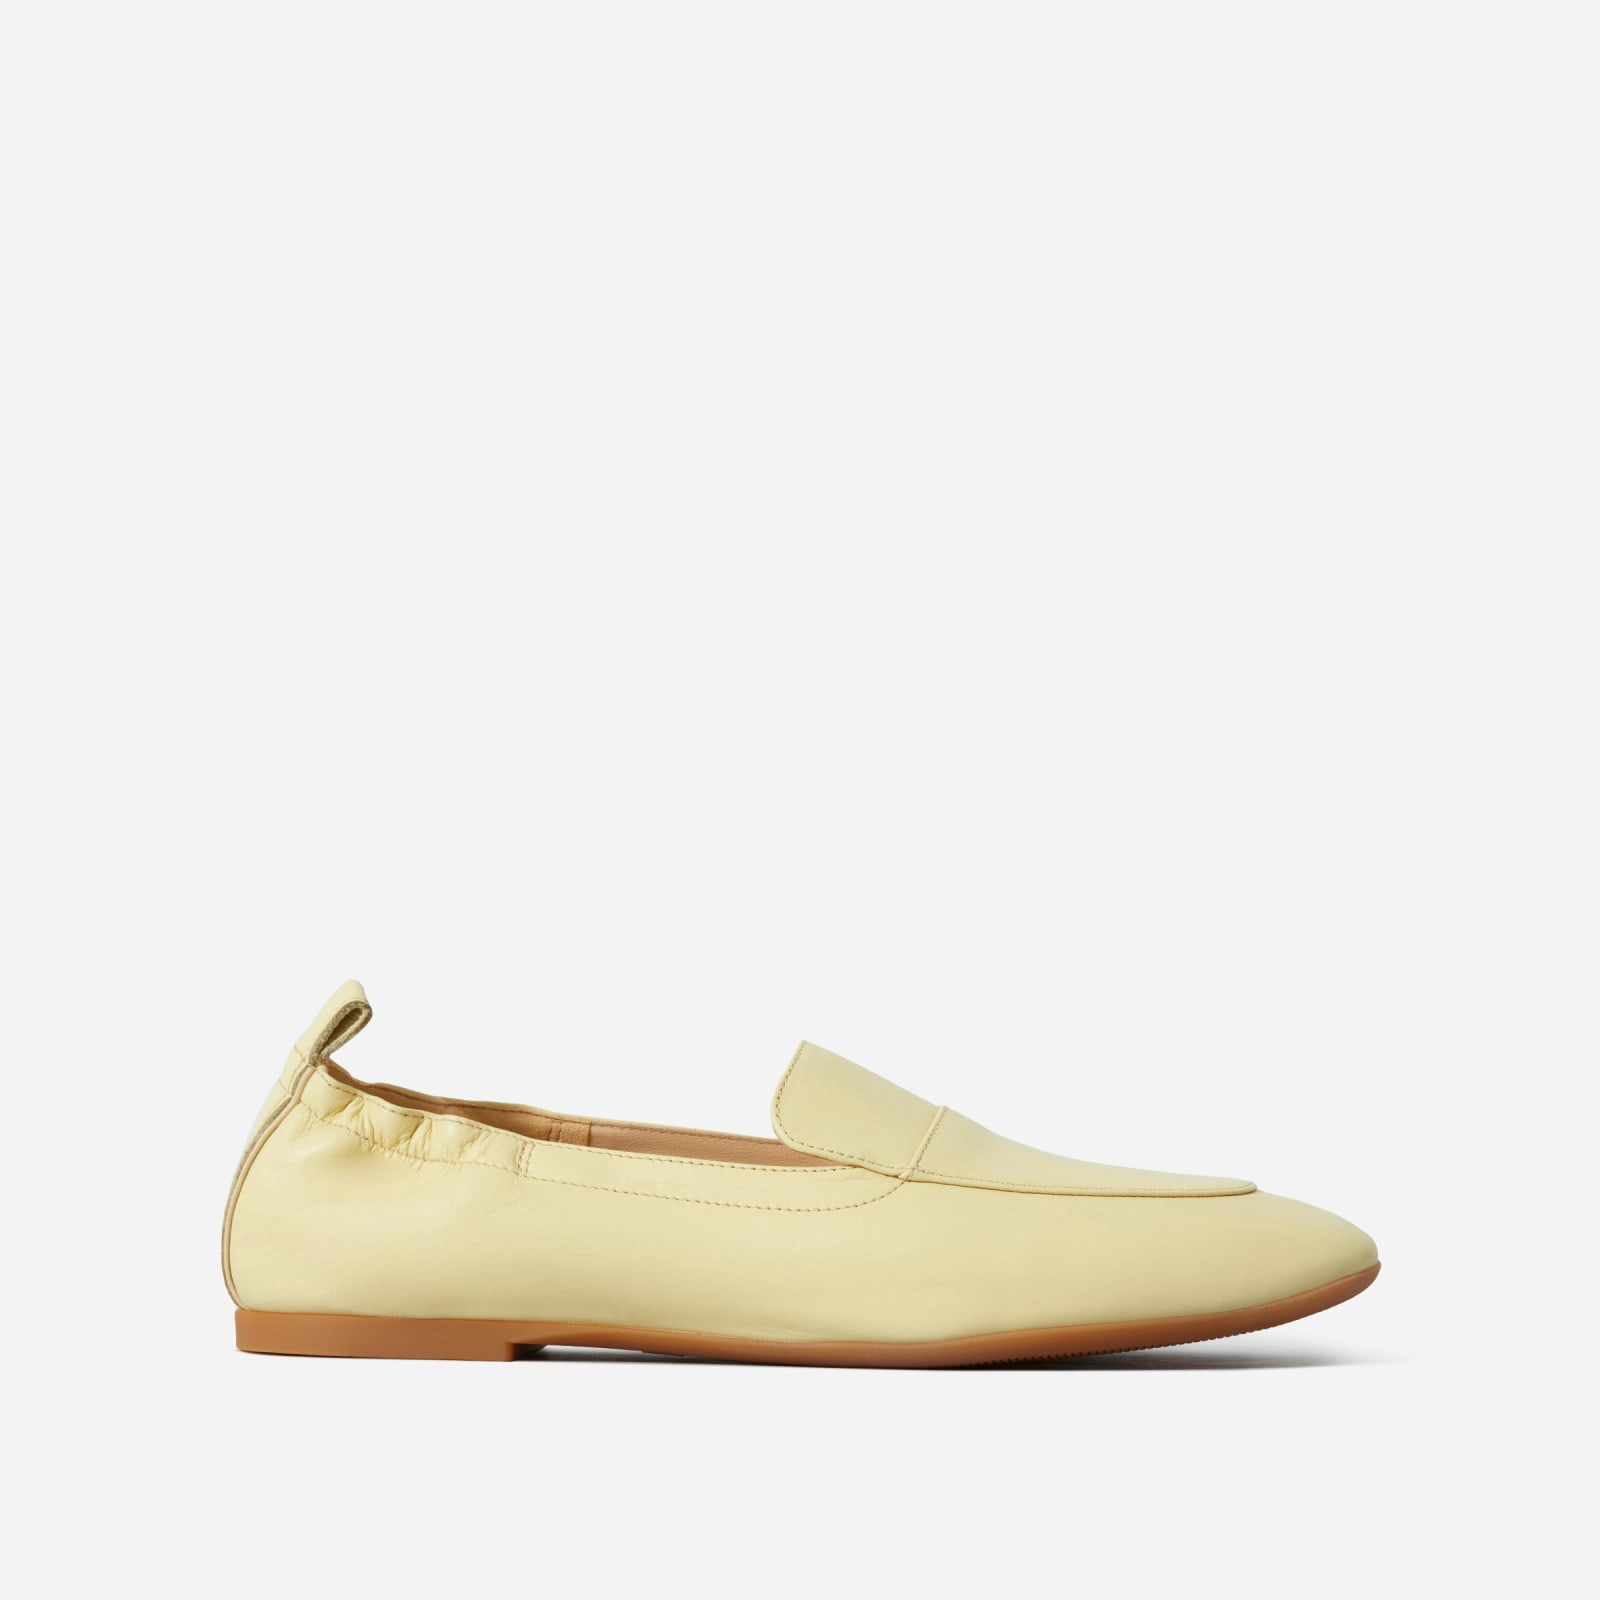 leather driving loafers by everlane in pale yellow, size 5